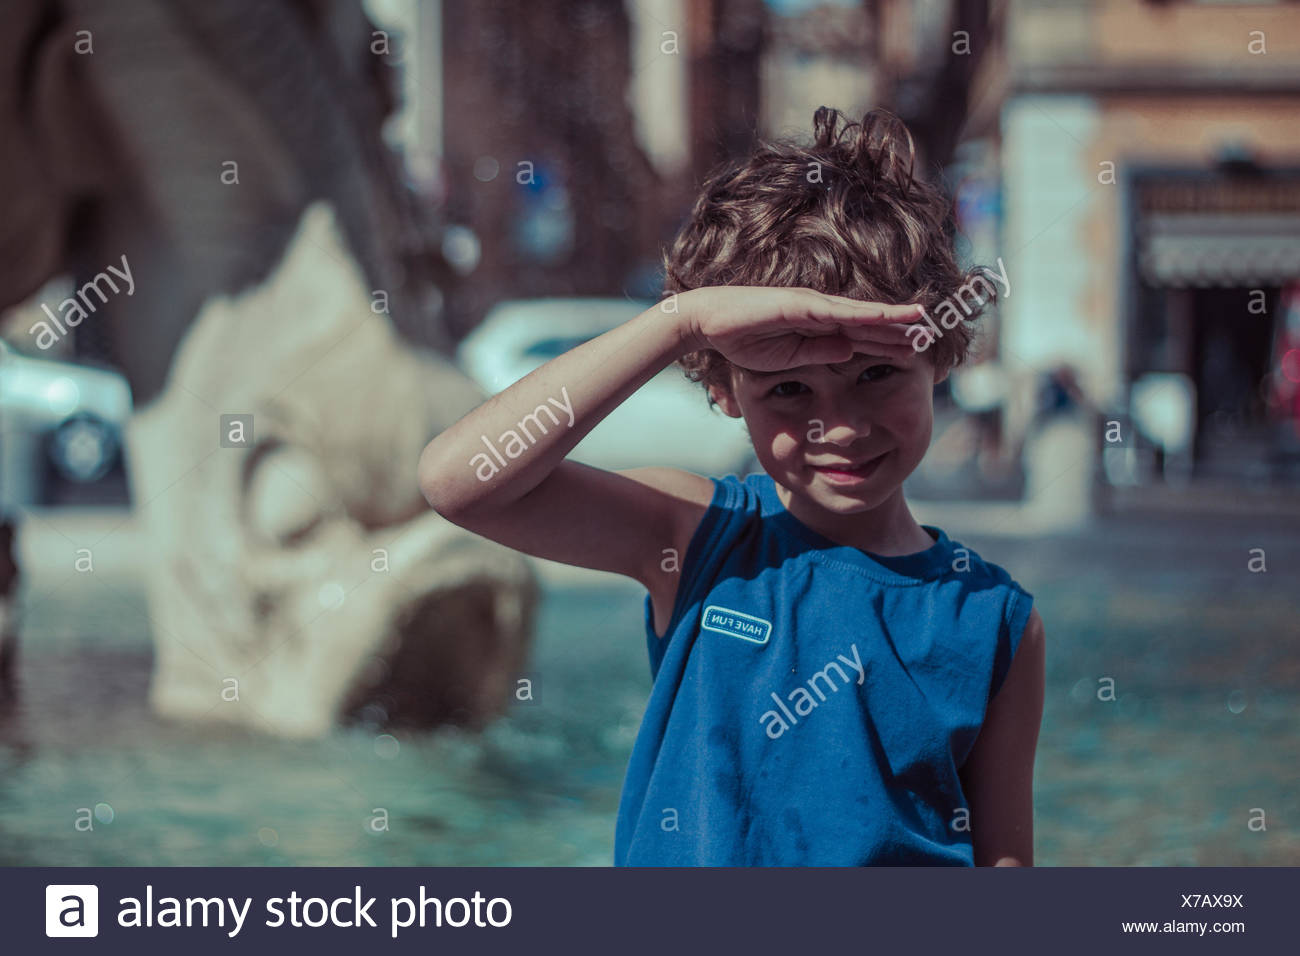 Boy looking at view with hand raised to forehead, shielding eyes - Stock Image